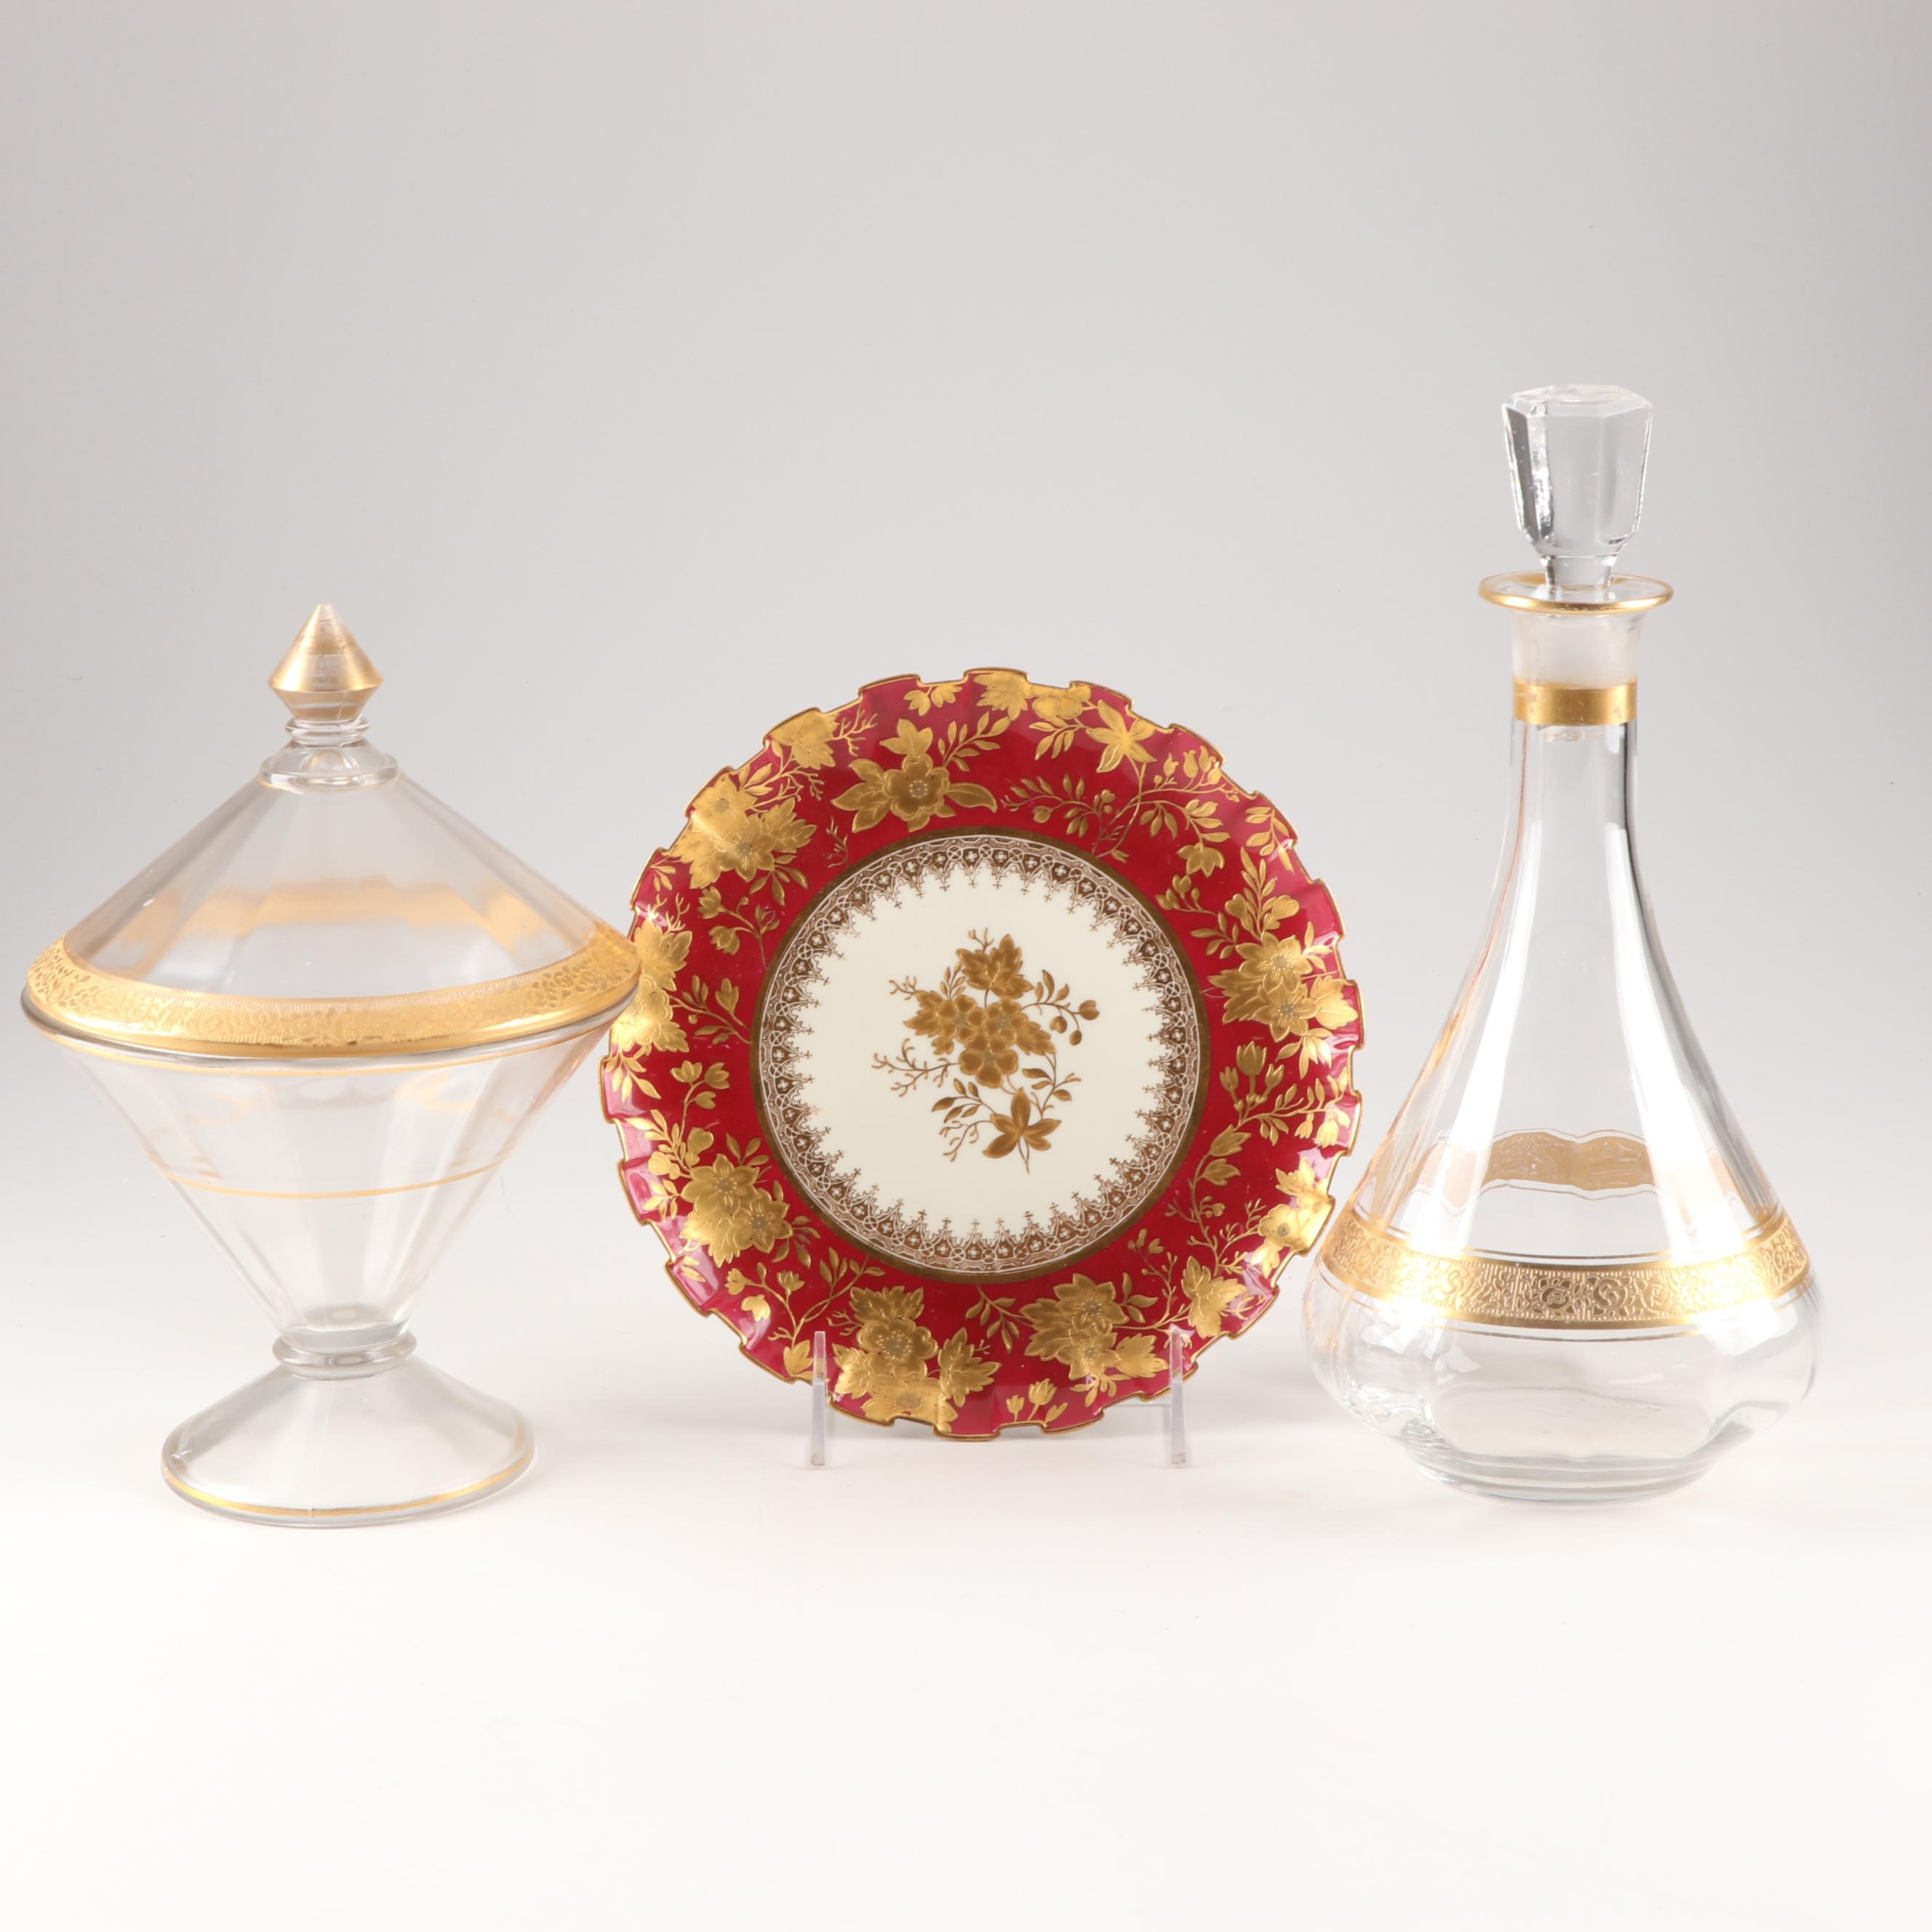 Gilt Glassware and Porcelain Plate